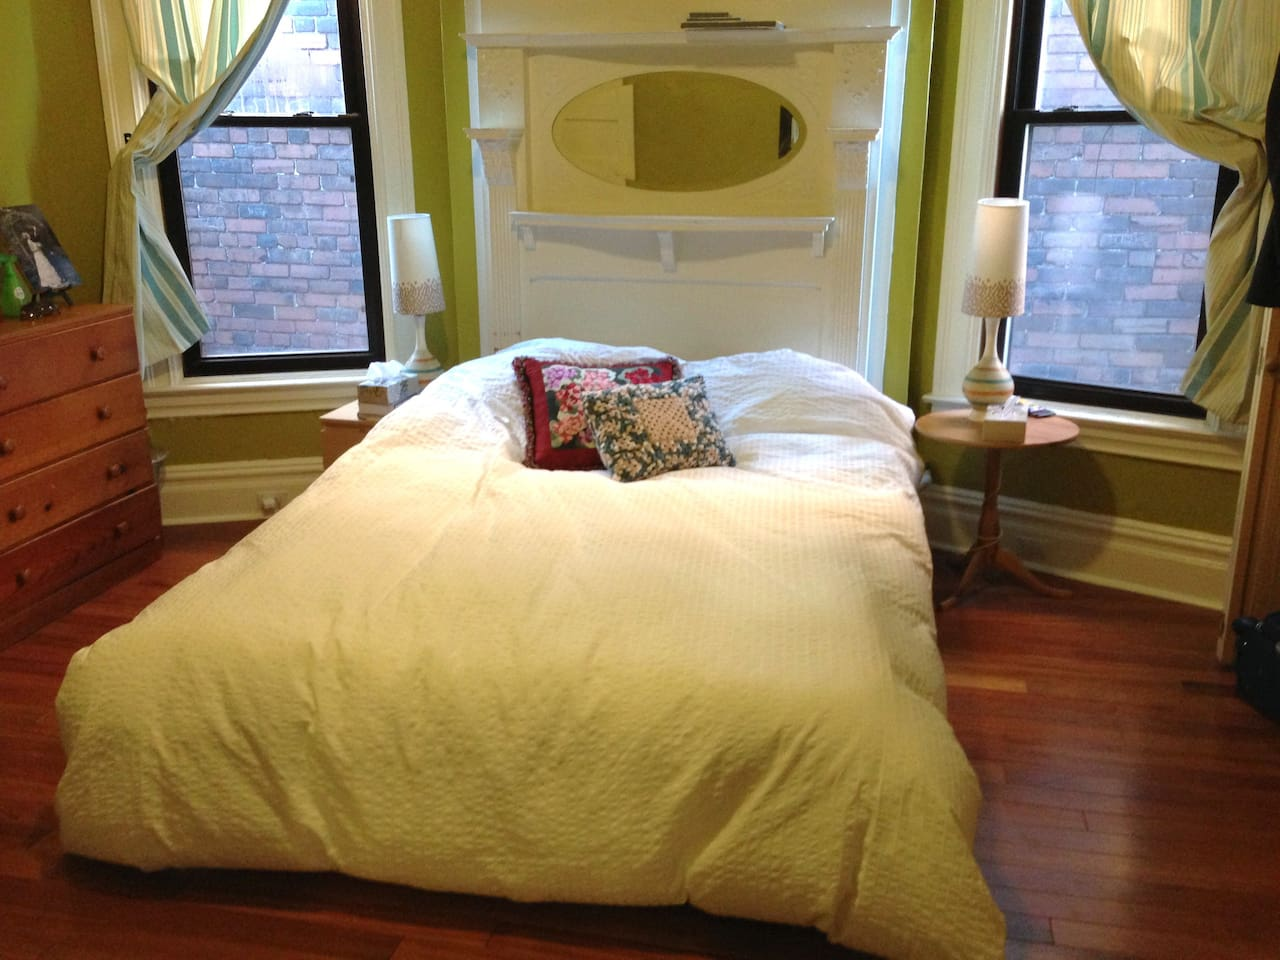 Cozy bedroom in the rear of building. We live on a busy road but put our bedroom in the back where it is cooler and quieter. We love sleeping here!